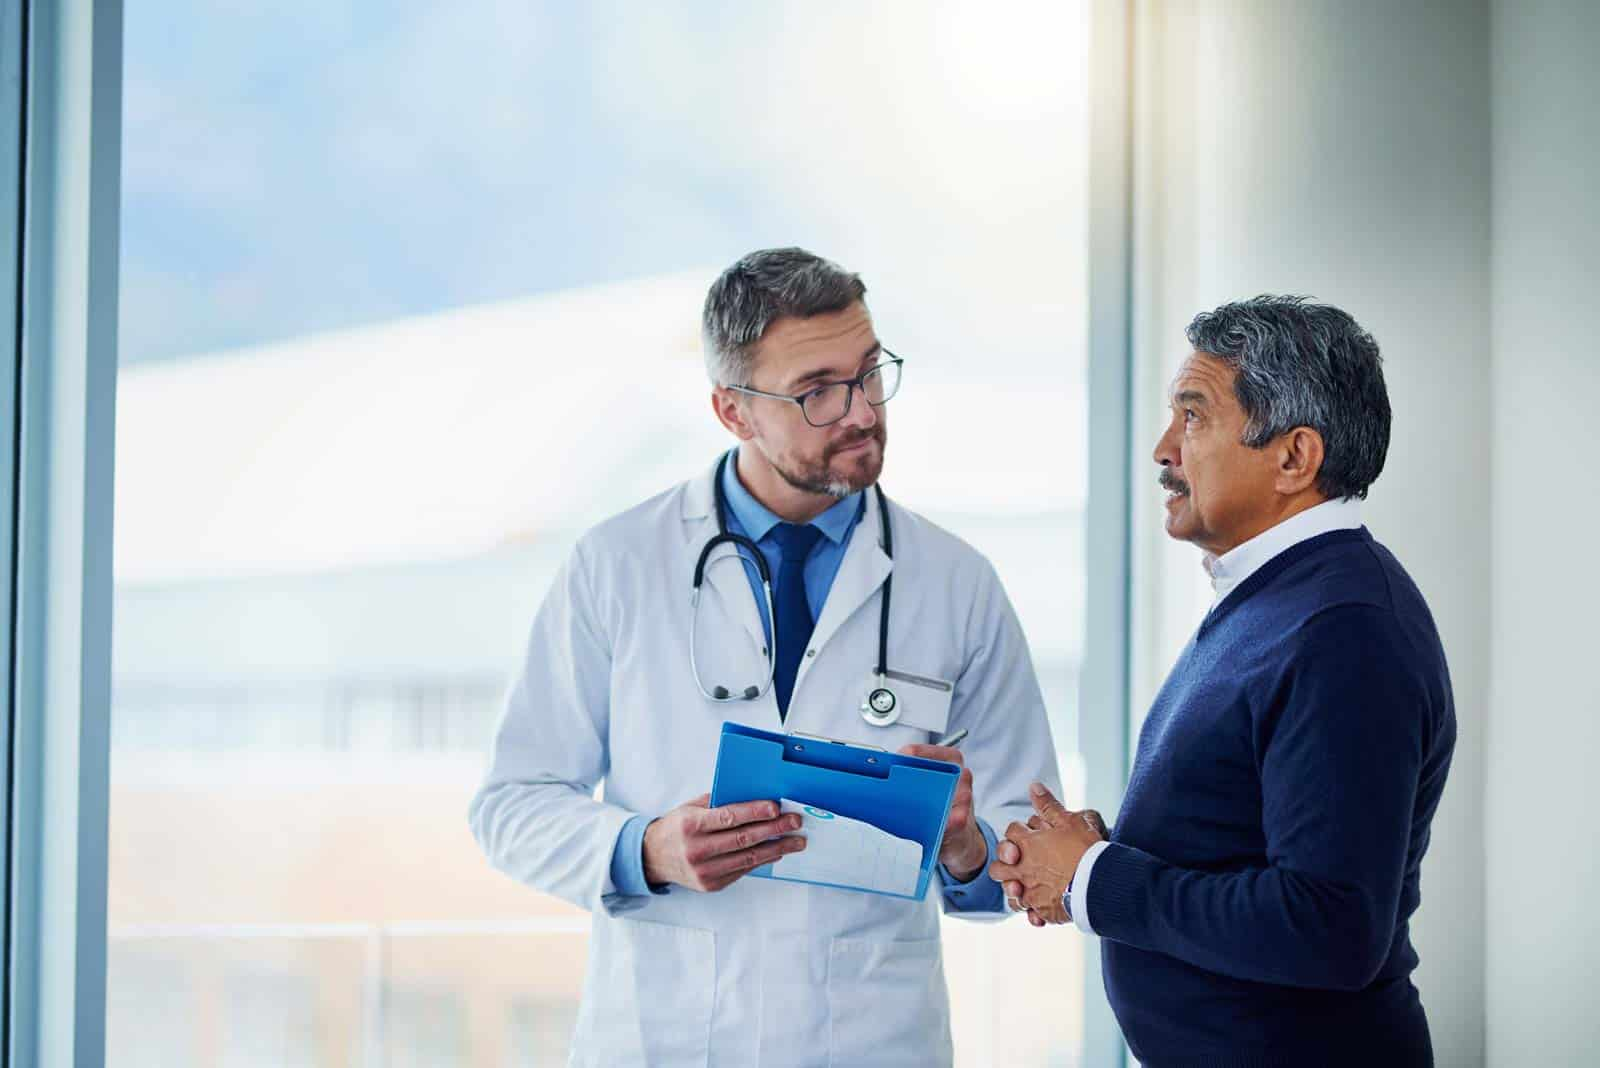 7 Strategies for Health Plans to Effectively Engage Medicare Members